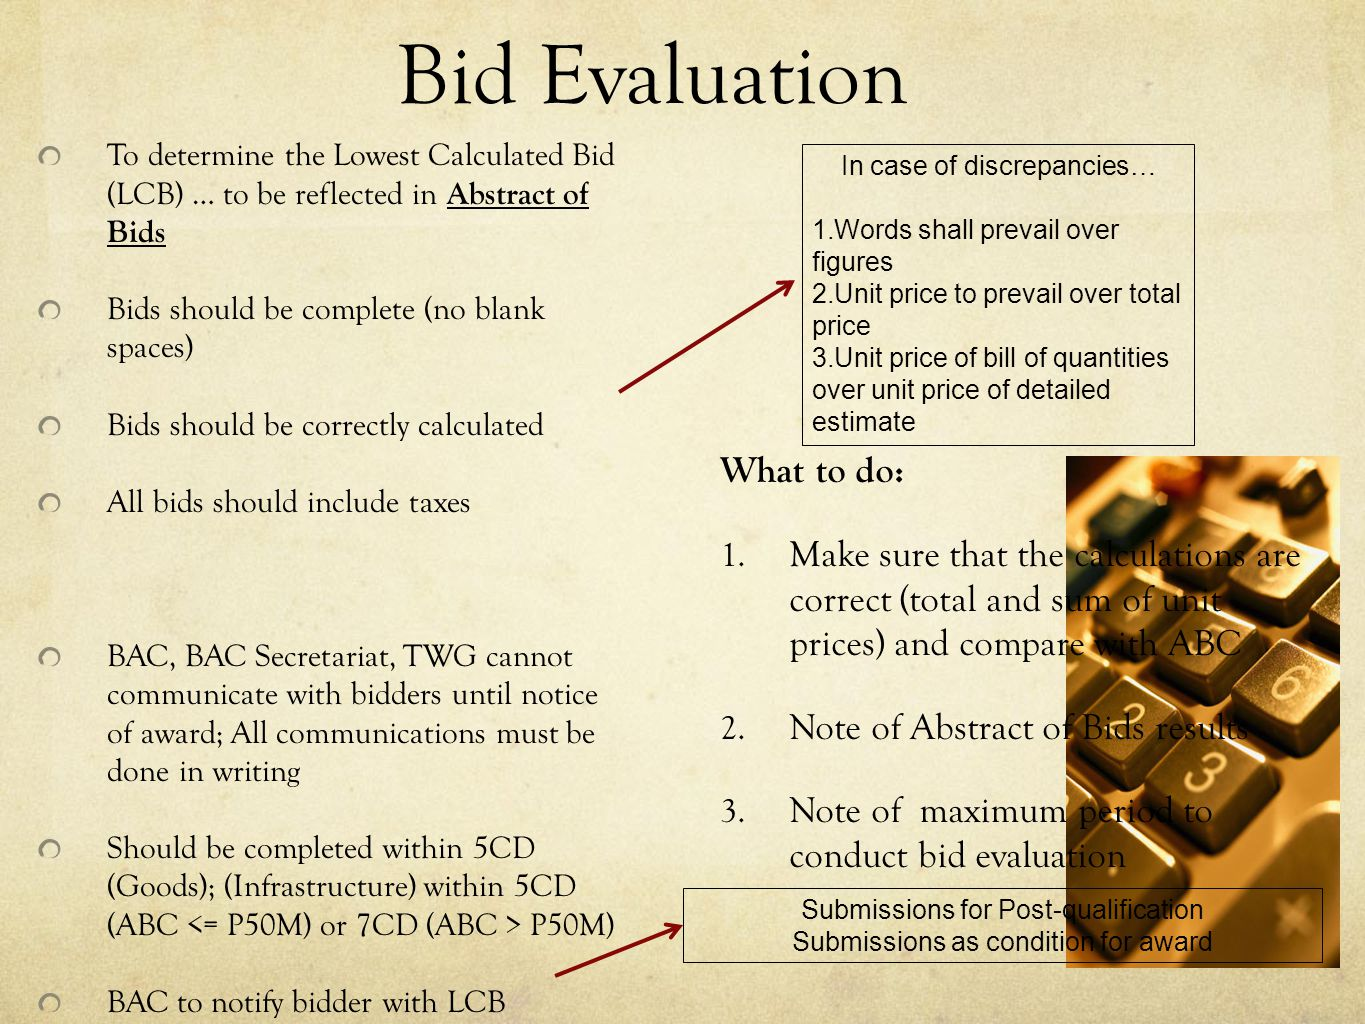 Bid Evaluation To determine the Lowest Calculated Bid (LCB) … to be reflected in Abstract of Bids Bids should be complete (no blank spaces) Bids should be correctly calculated All bids should include taxes BAC, BAC Secretariat, TWG cannot communicate with bidders until notice of award; All communications must be done in writing Should be completed within 5CD (Goods); (Infrastructure) within 5CD (ABC P50M) BAC to notify bidder with LCB In case of discrepancies… 1.Words shall prevail over figures 2.Unit price to prevail over total price 3.Unit price of bill of quantities over unit price of detailed estimate What to do: 1.